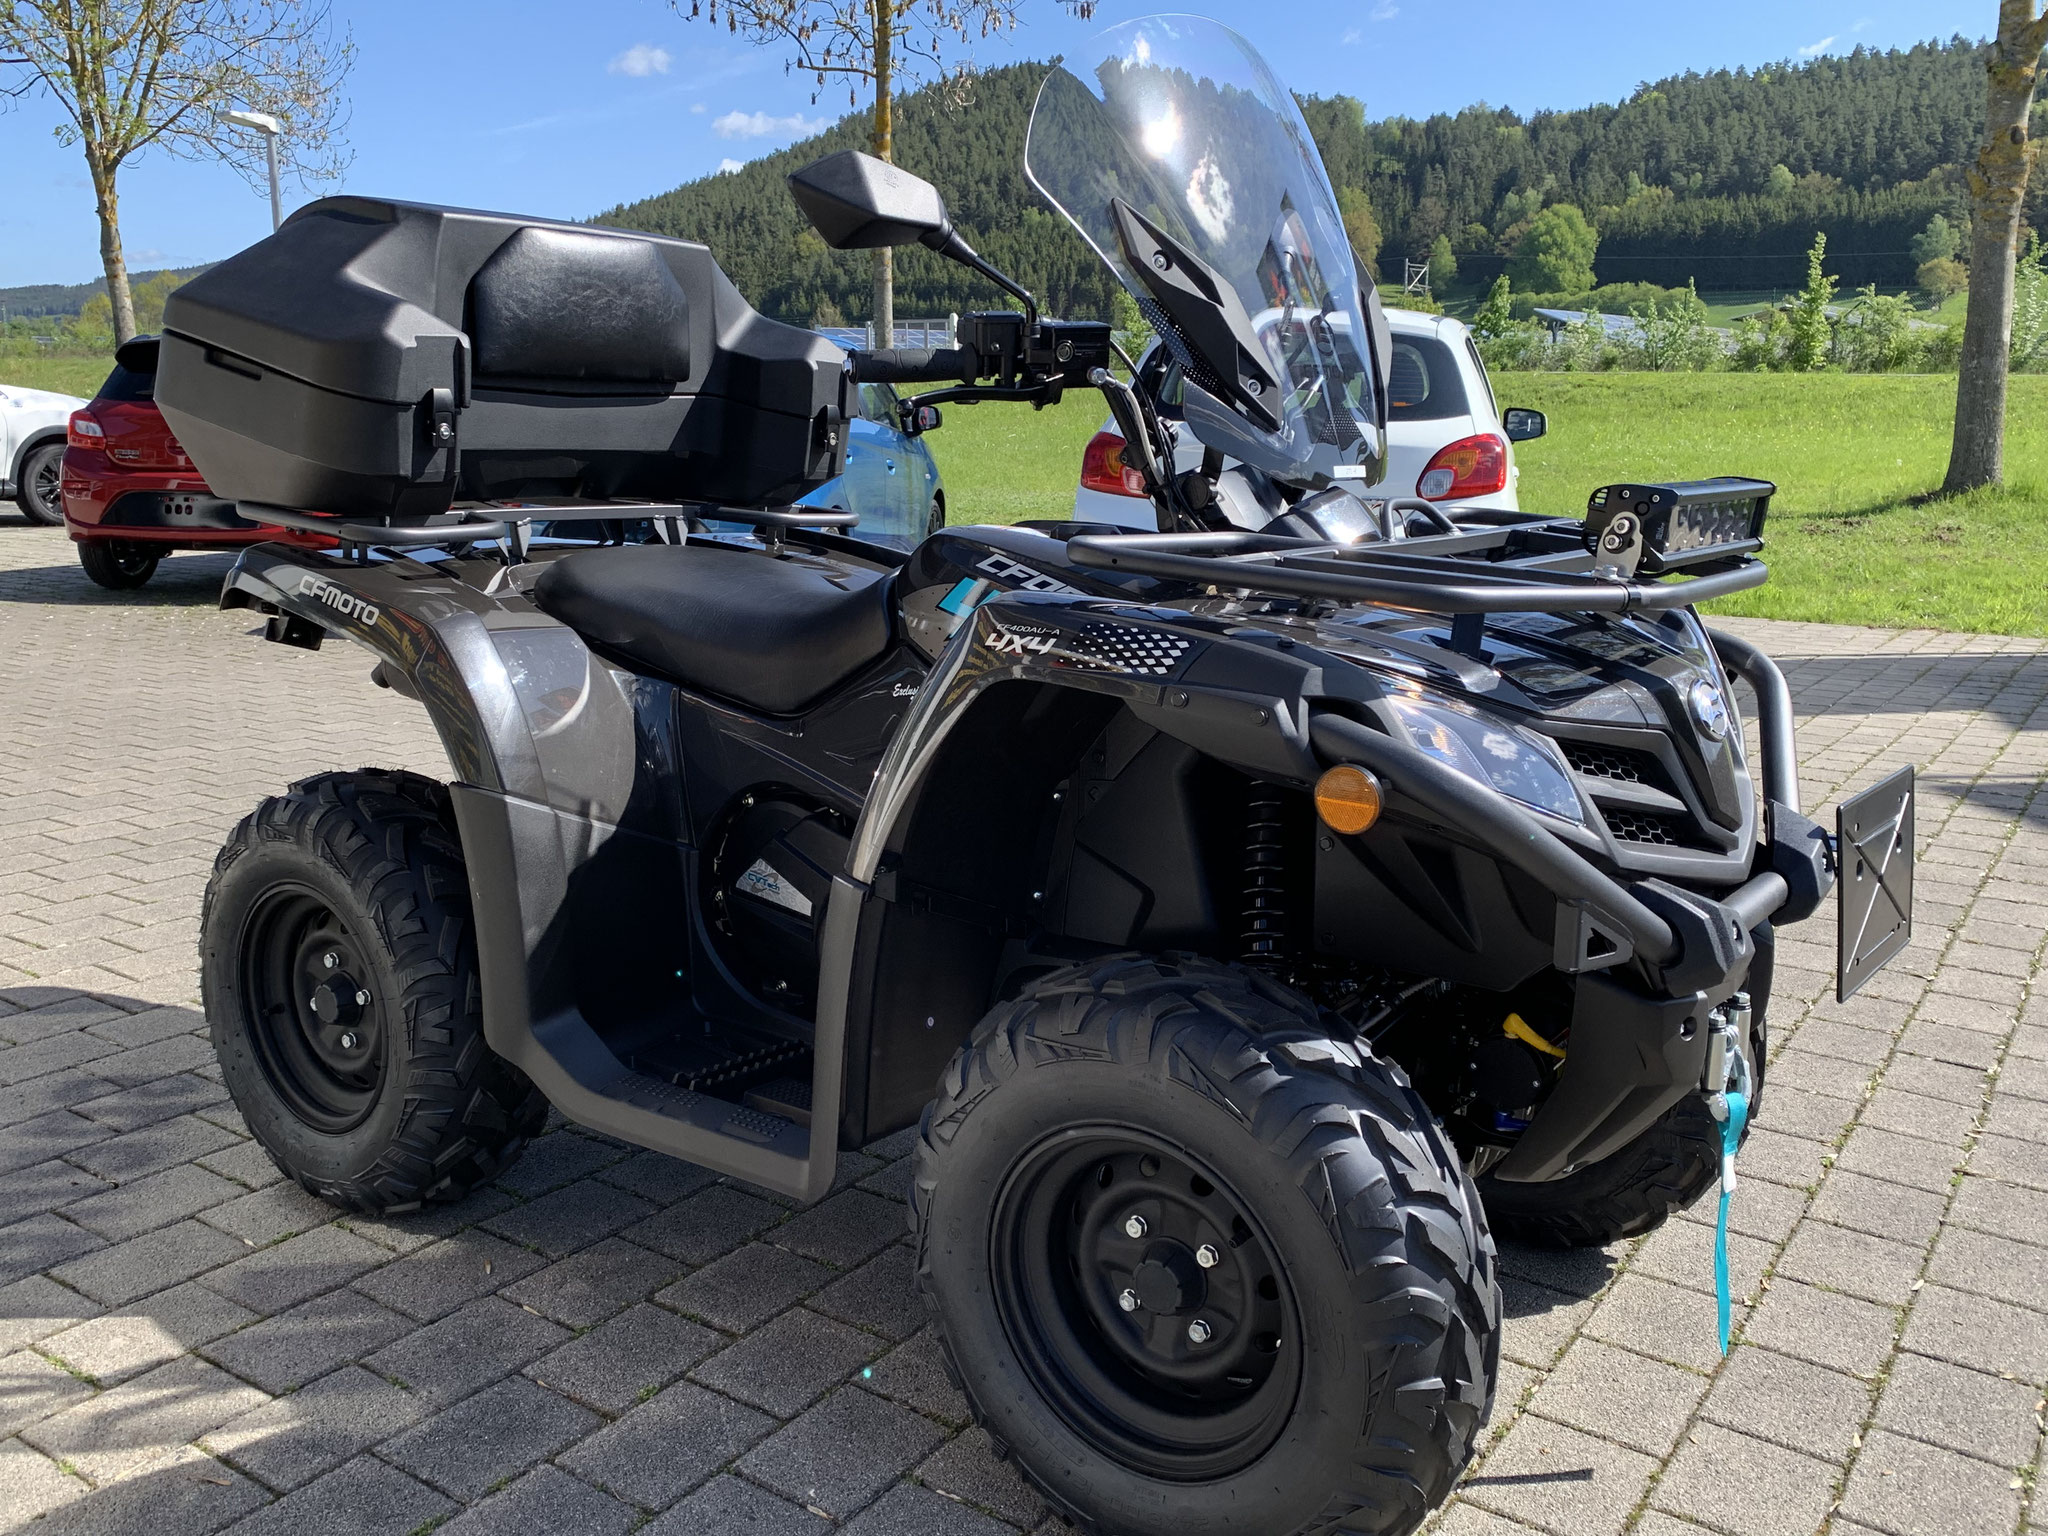 CF MOTO CForce 450 on Touring